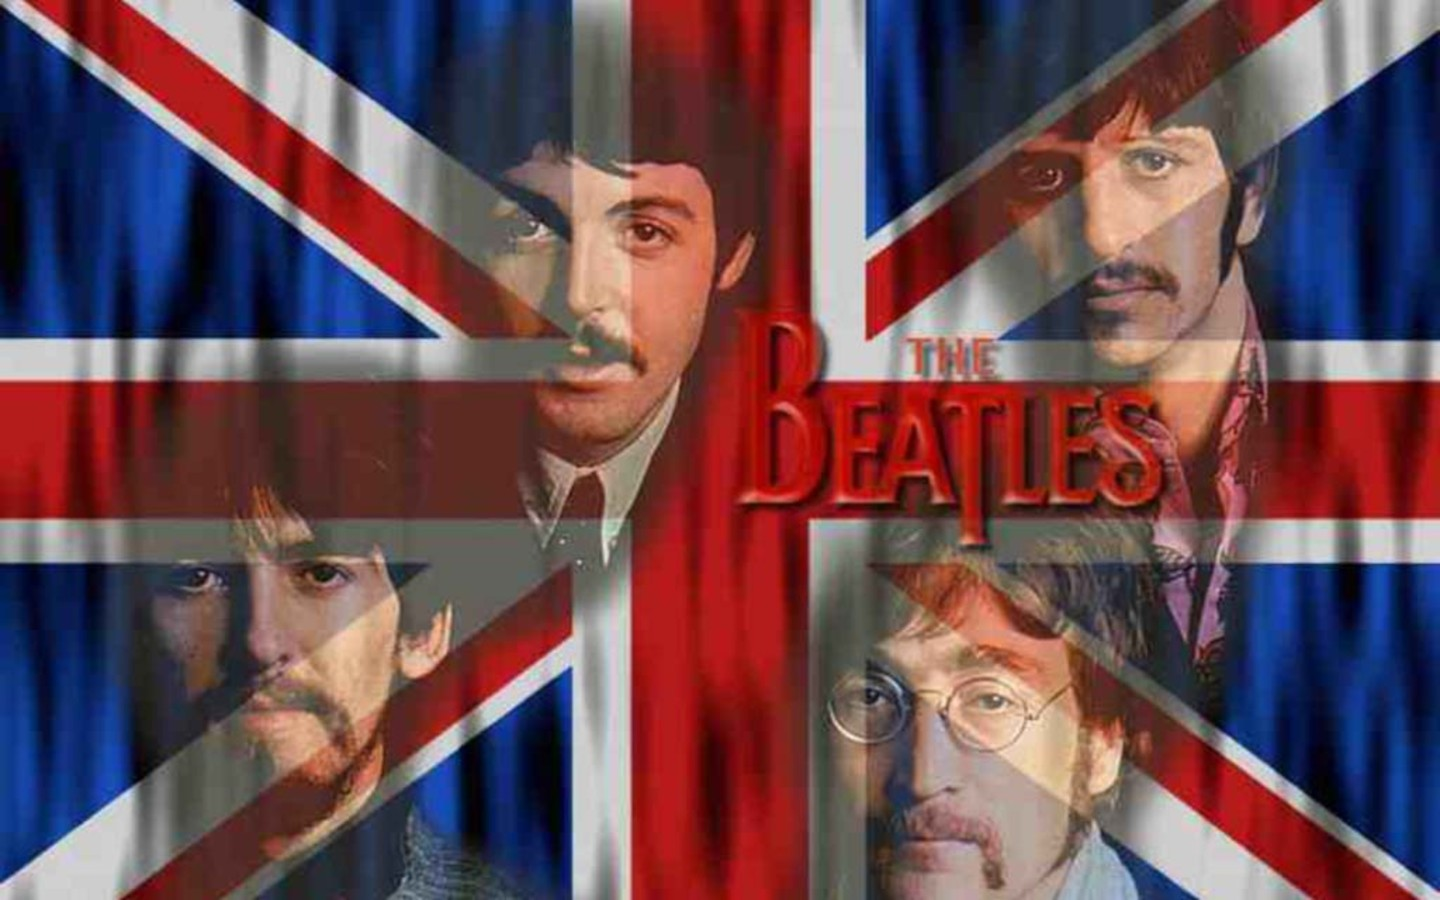 Beatles With UK Flag Wallpaper